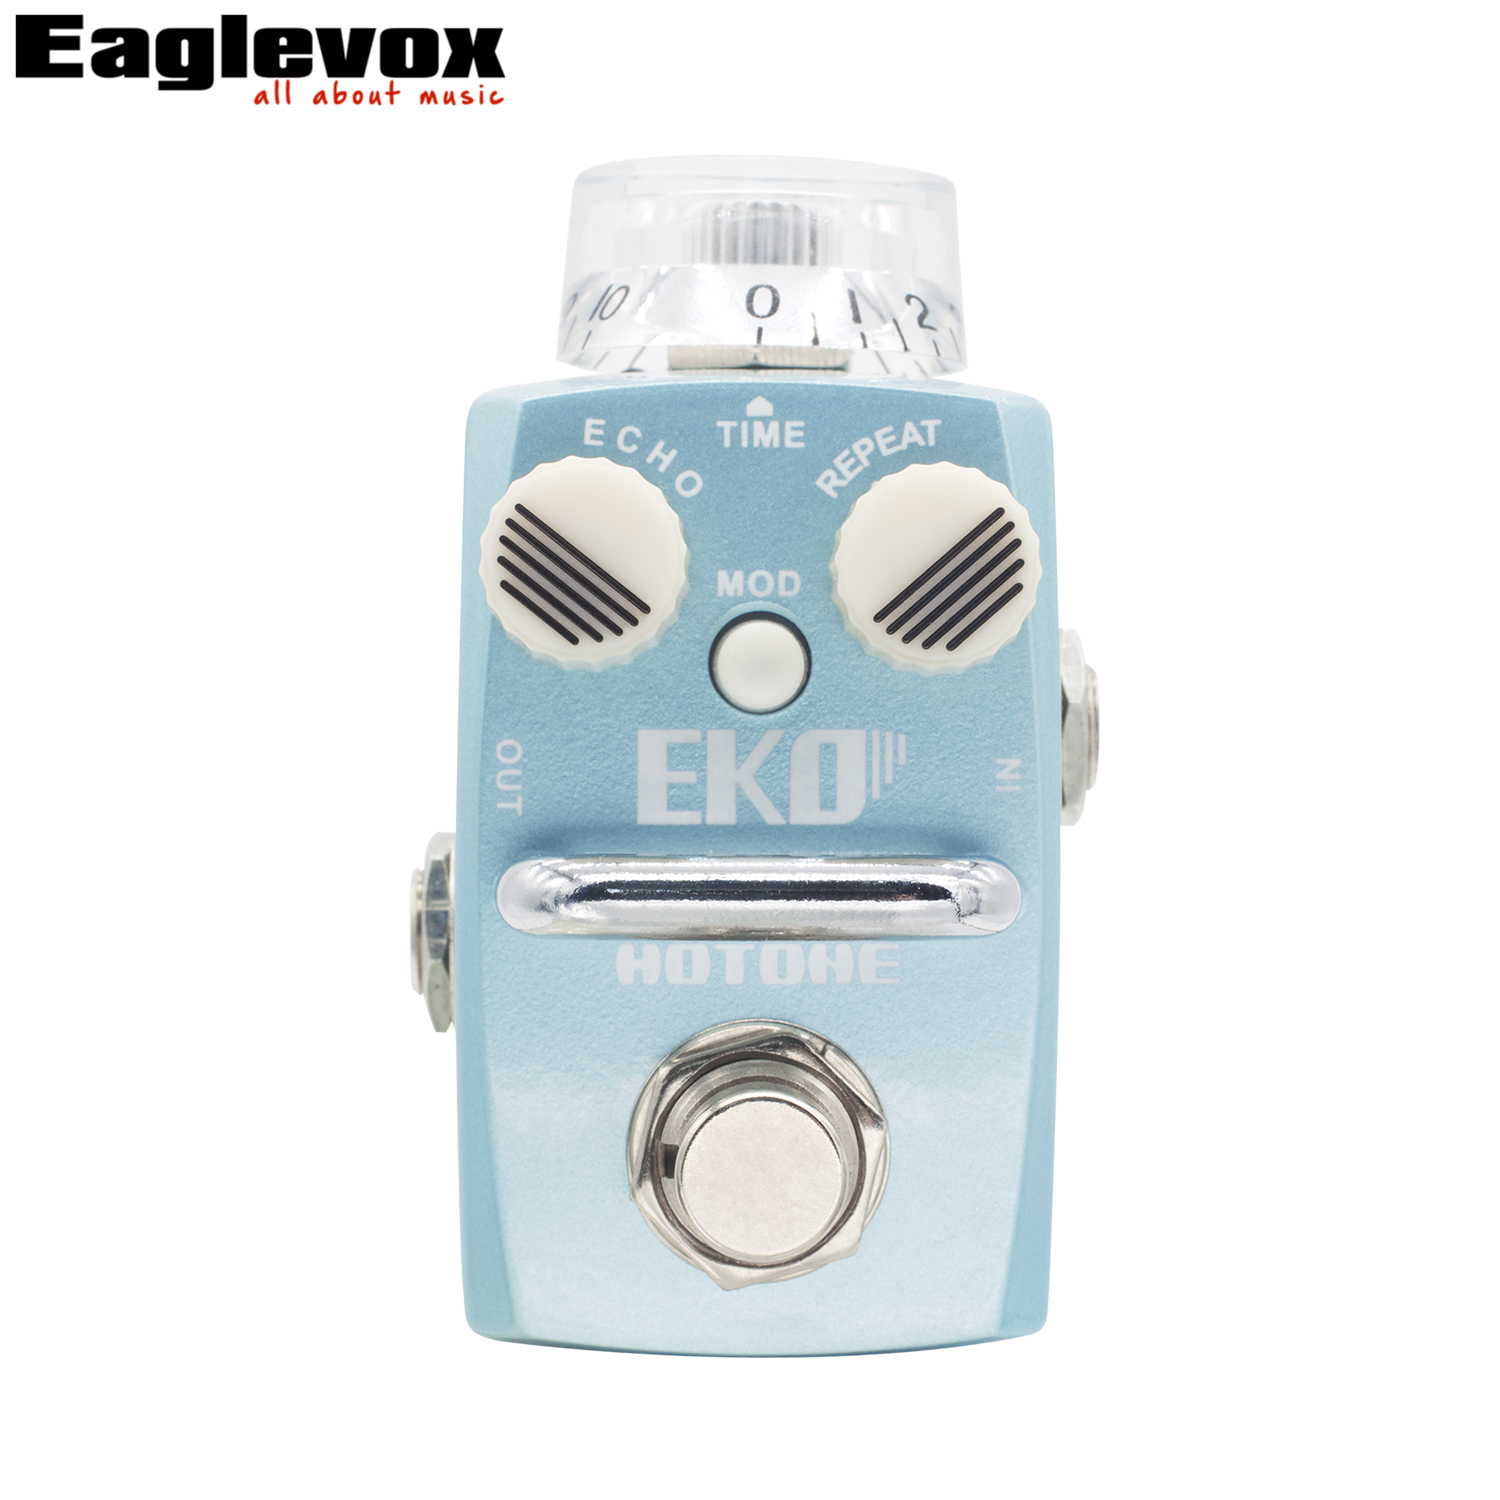 Hotone EKO Digital Delay Echo Guitar Effect Pedal True Bypass Electric Guitar Bass EKO Hotone Pure warm natural echo aroma adl 1 true bypass delay electric guitar effect pedal high quality aluminum alloy guitar accessories delay range 50 400ms